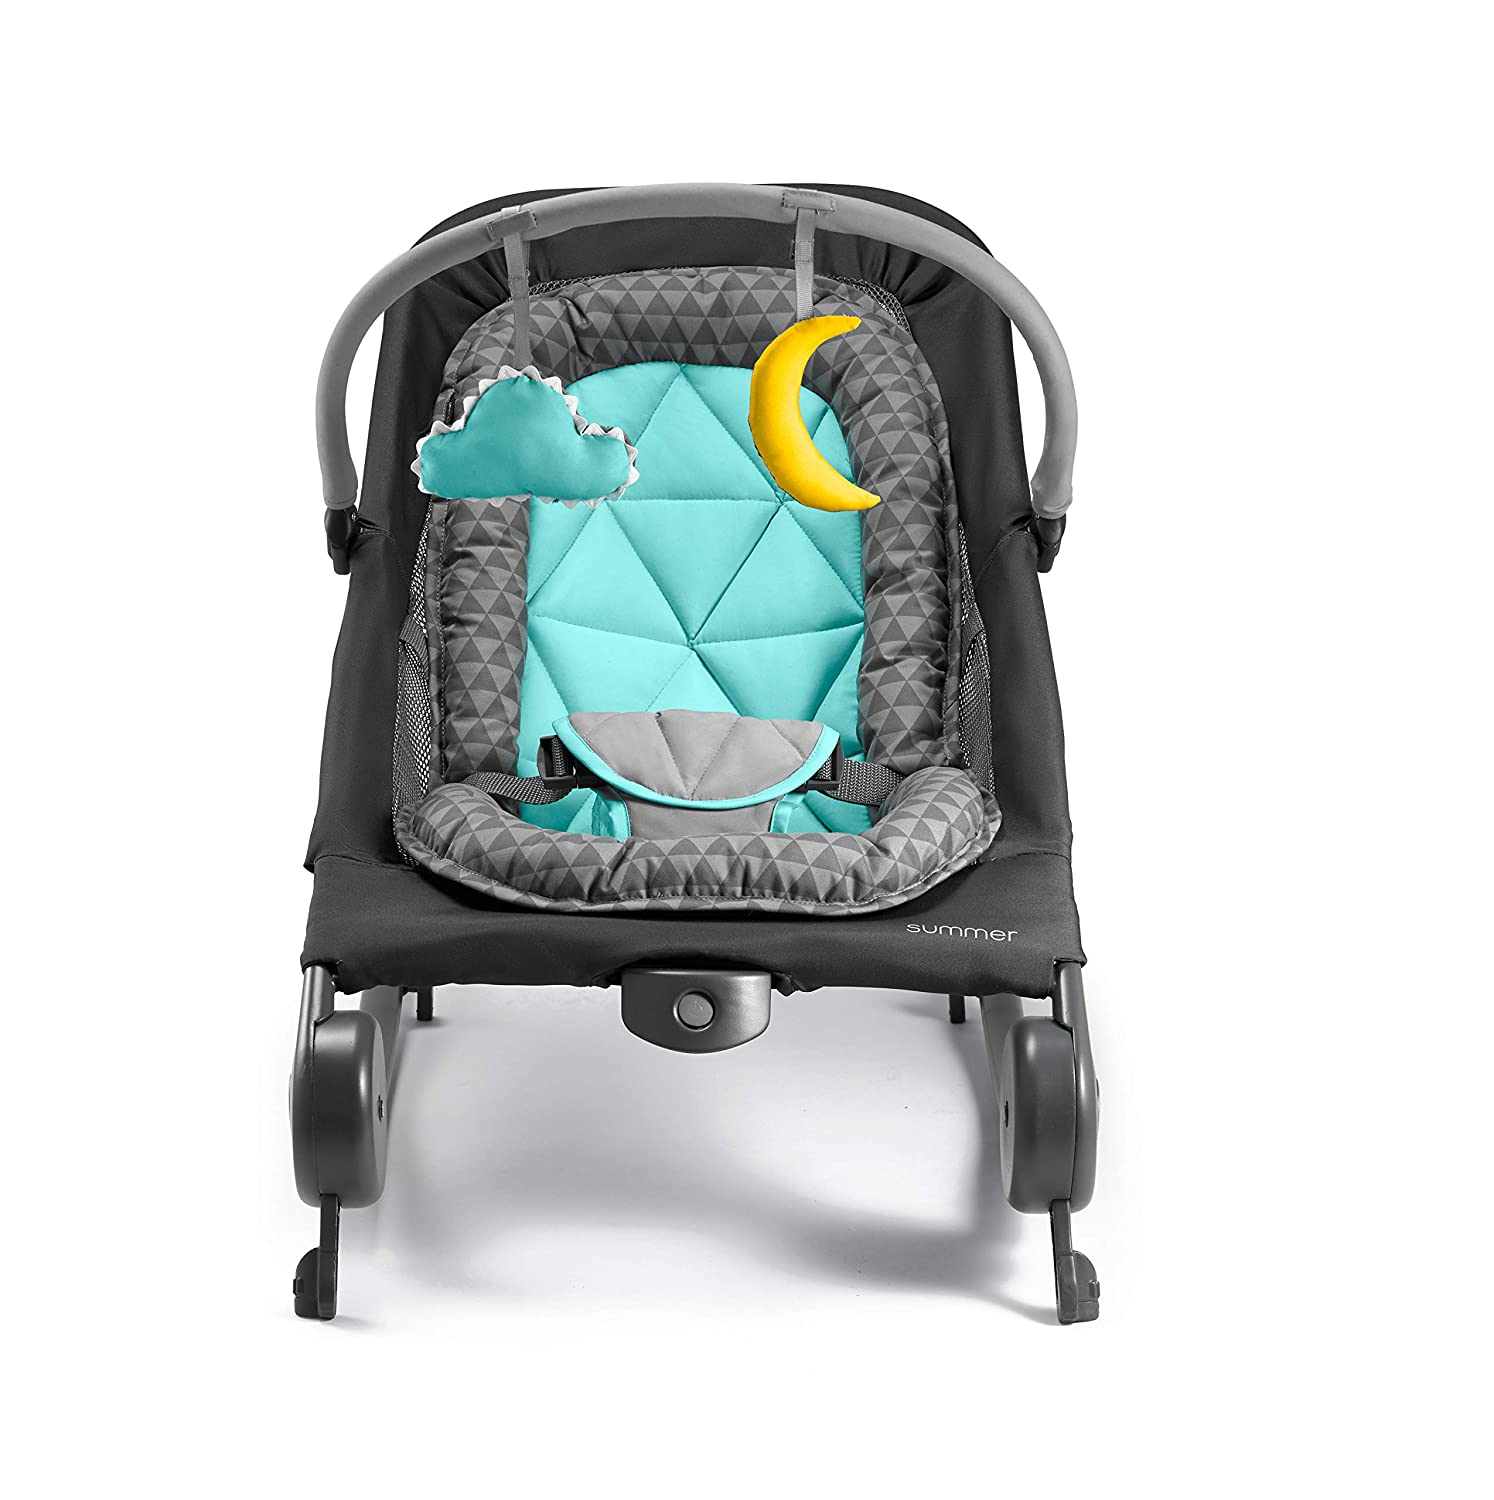 Easy to Clean Summer 2-in-1 Bouncer /& Rocker Duo Machine Washable Fabrics Removable Toys /& Compact Fold for Storage or Travel Baby Bouncer /& Baby Rocker with Soothing Vibrations Gray//Teal